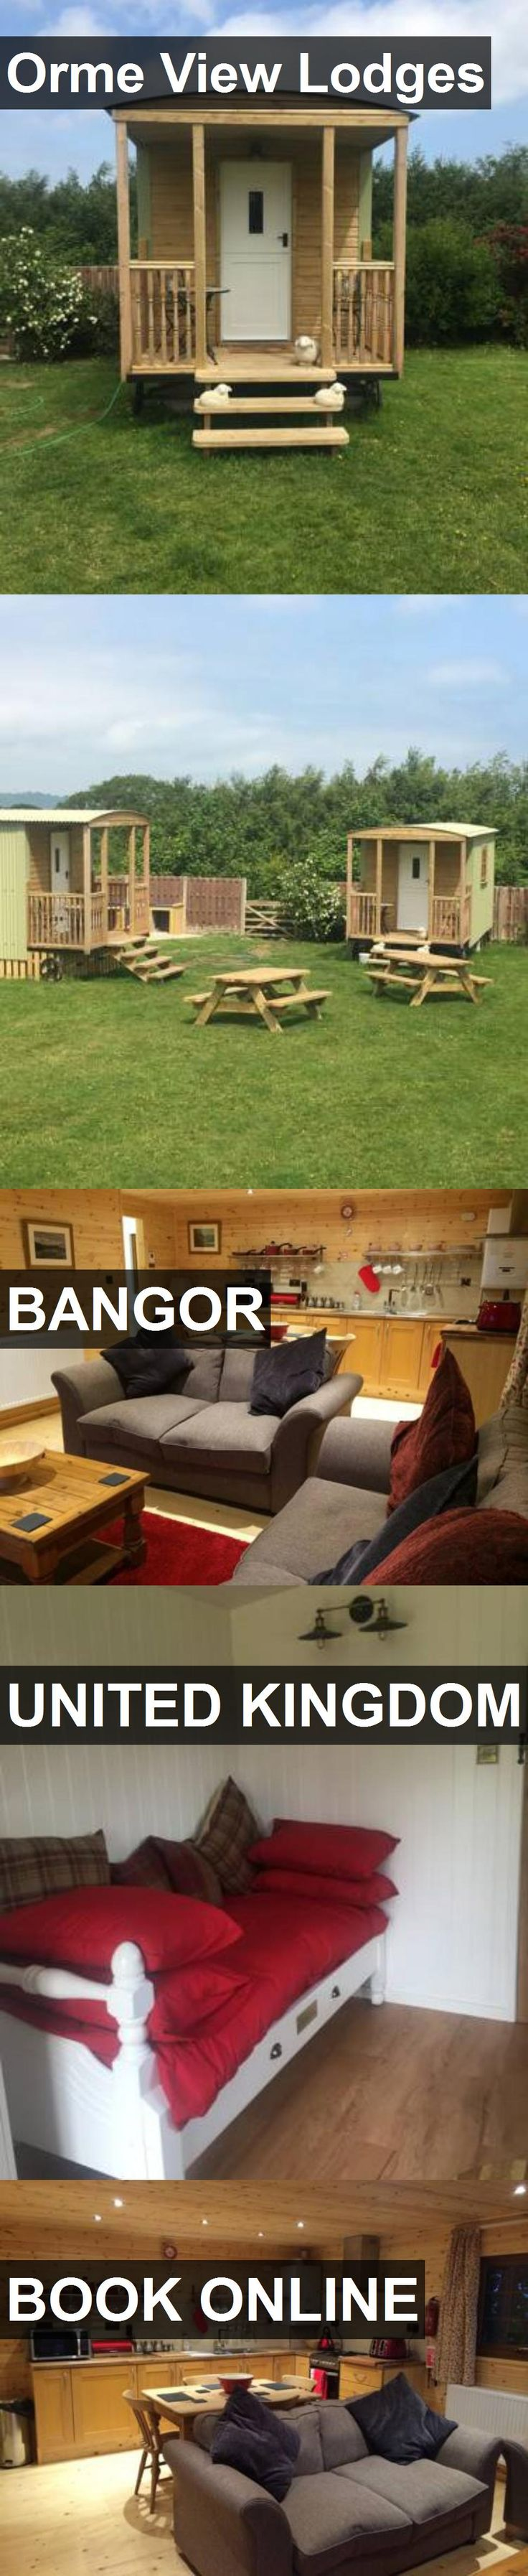 Hotel Orme View Lodges in Bangor, United Kingdom. For more information, photos, reviews and best prices please follow the link. #UnitedKingdom #Bangor #travel #vacation #hotel